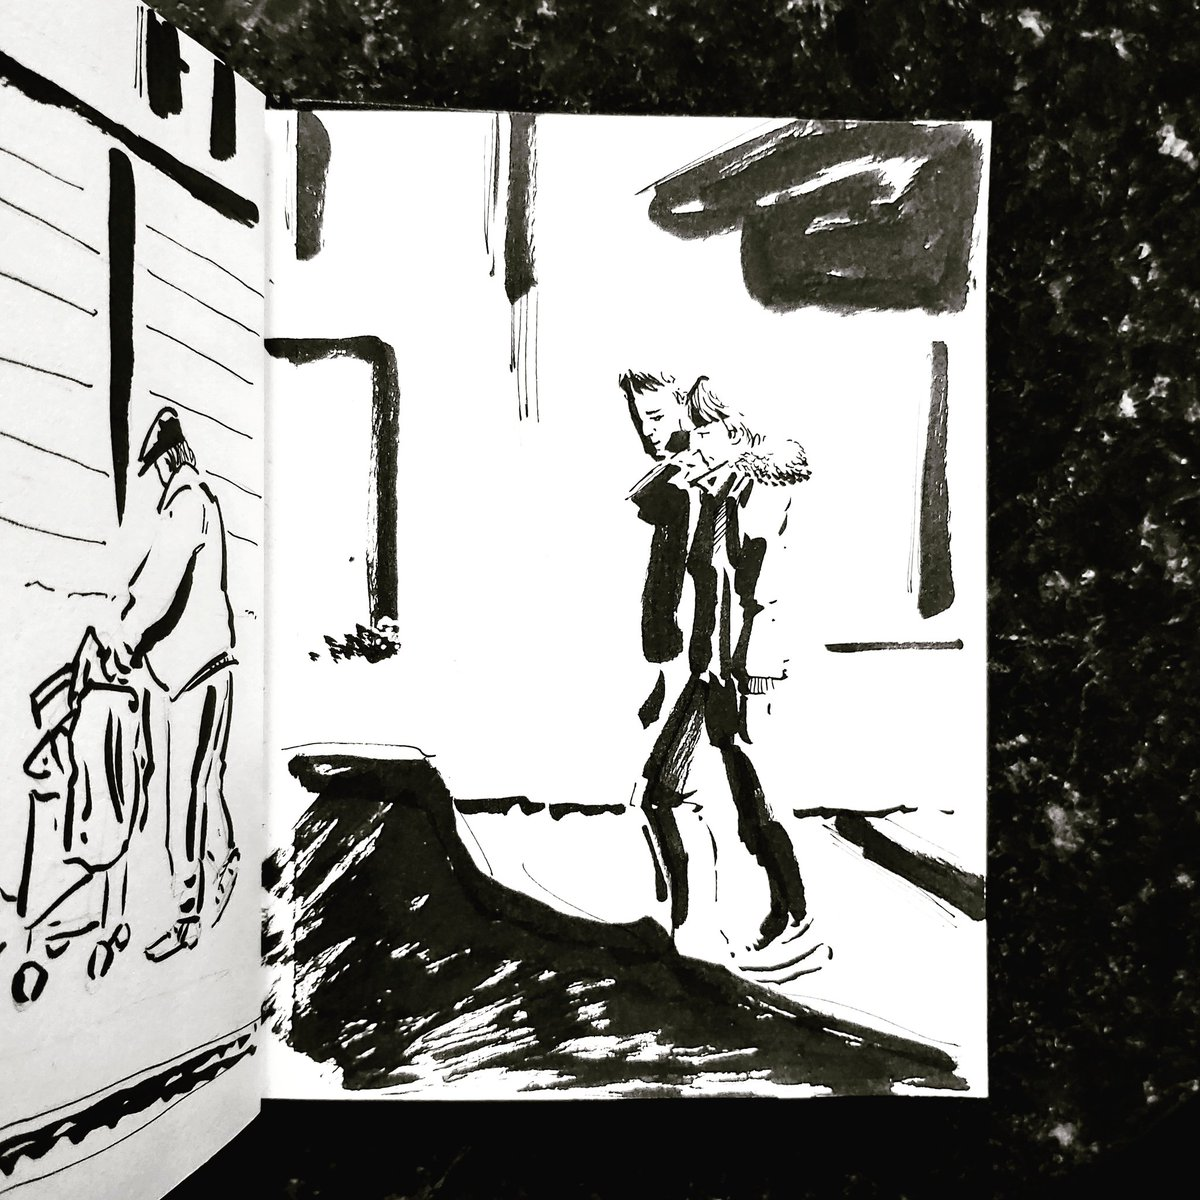 From the Inside 2 Day 150 (268 total) #isolation study Kitchen window Passerby No 162/163 #isolationlife #stayathome #lockdown #lockdown2uk #sketchbook #sketch #drawing #draw #doodle #ink #lineart #lifedrawing #figuredrawing #walk #artoftheday #art #artwork #artist #illustration